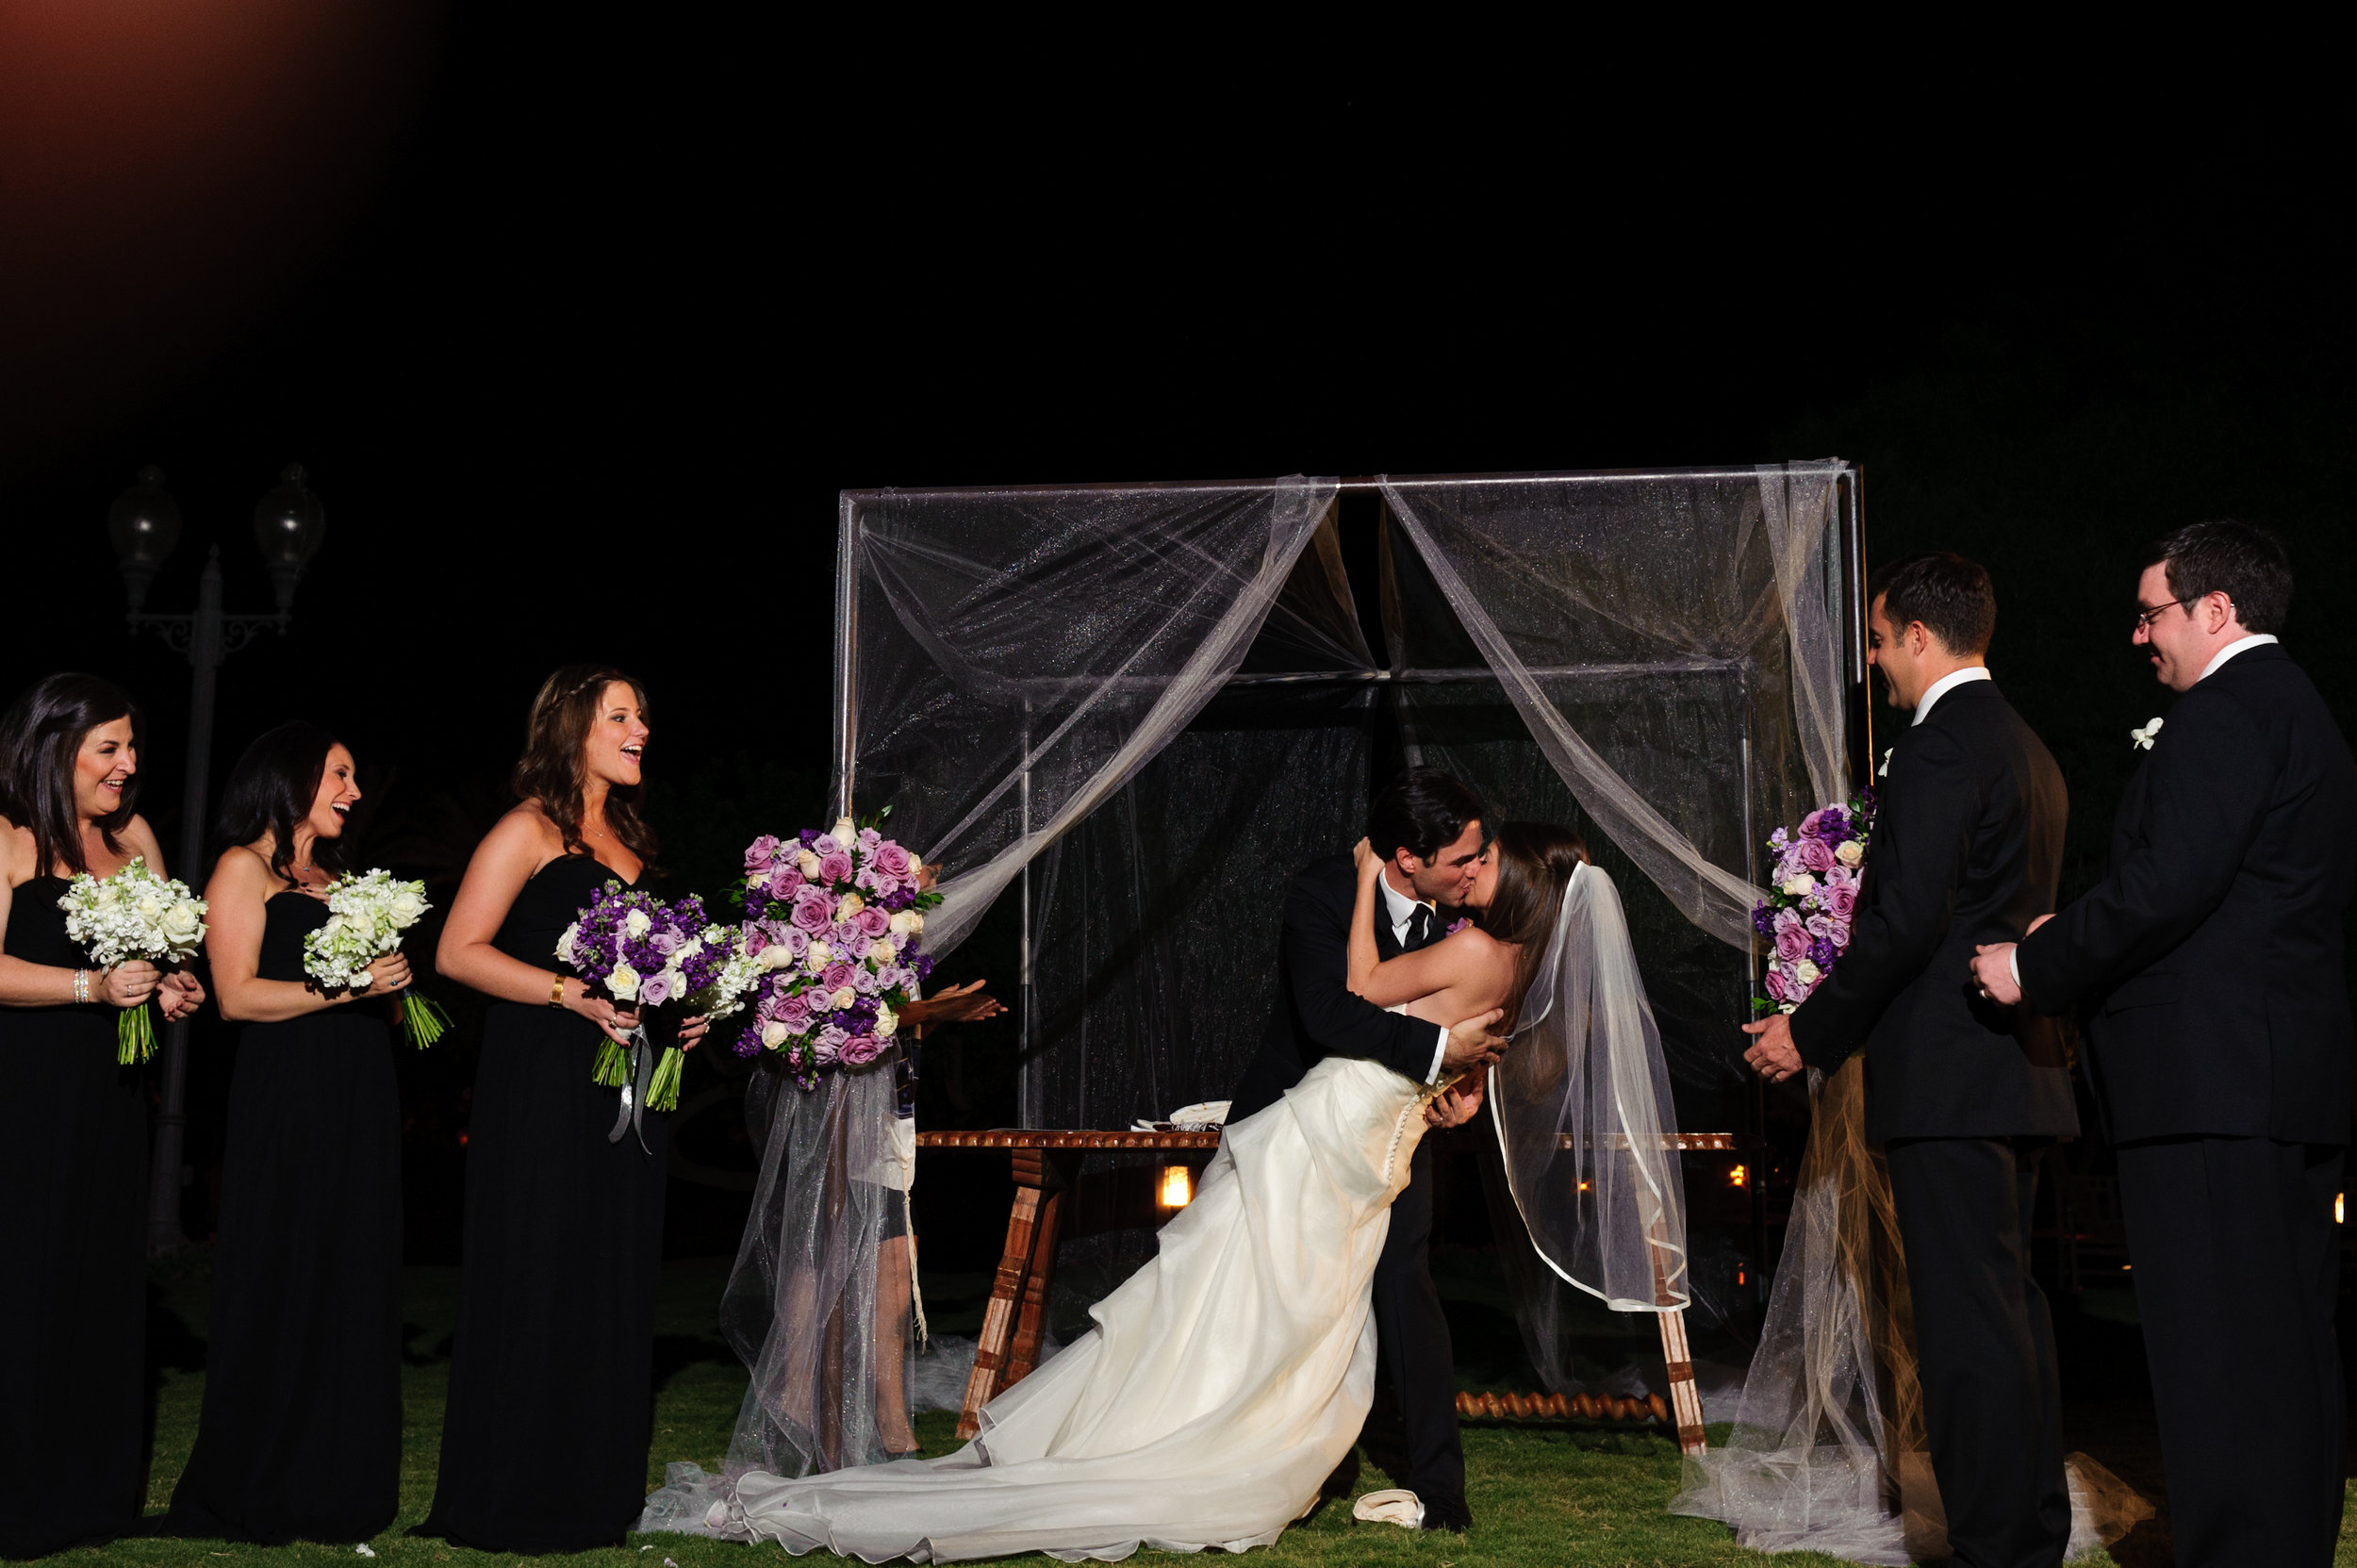 23  bride and groom at the alter evening wedding ceremony bride and groom exchanging vows first kiss Sergio Photography Life Design Events.JPG.JPG